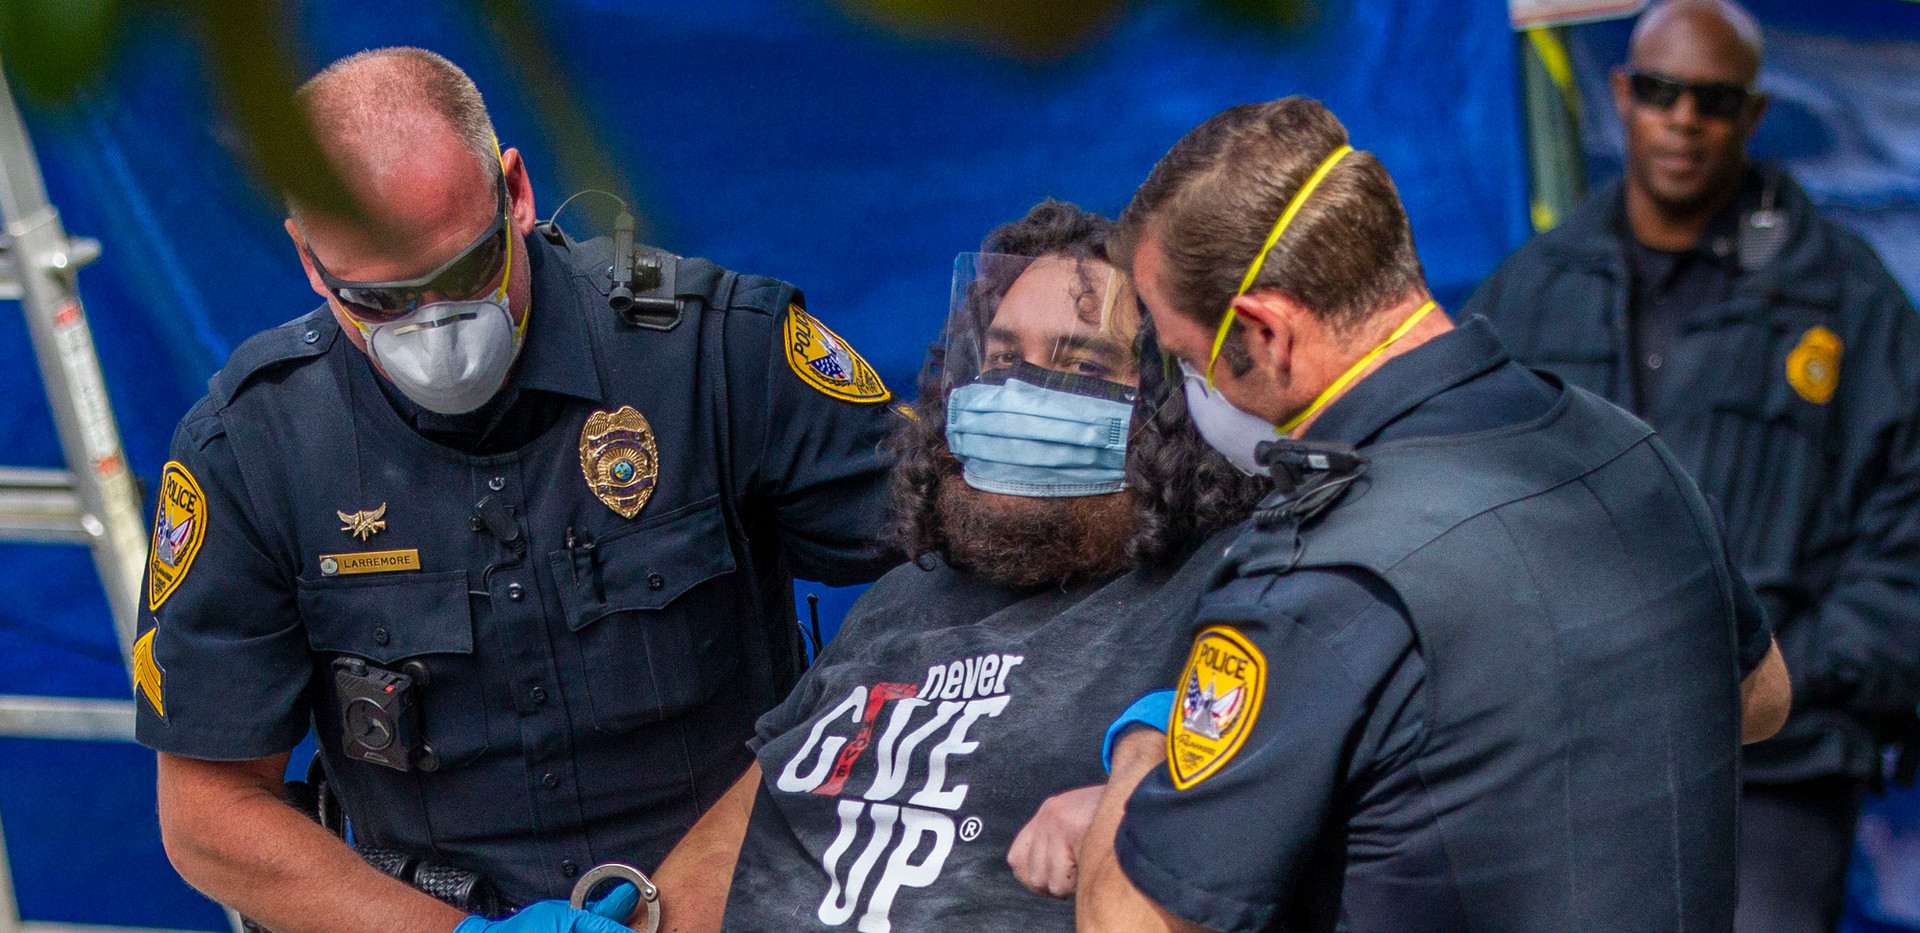 Officers with the Tallahassee Police Department arrest protester Jordan Mazurek, who cemented his hands in two 55-gallon plastic drums in the driveway of the Florida Governor's Mansion, Friday, April 17, 2020. Mazurek protests how Gov. Ron DeSantis is handling coronavirus in state prisons.